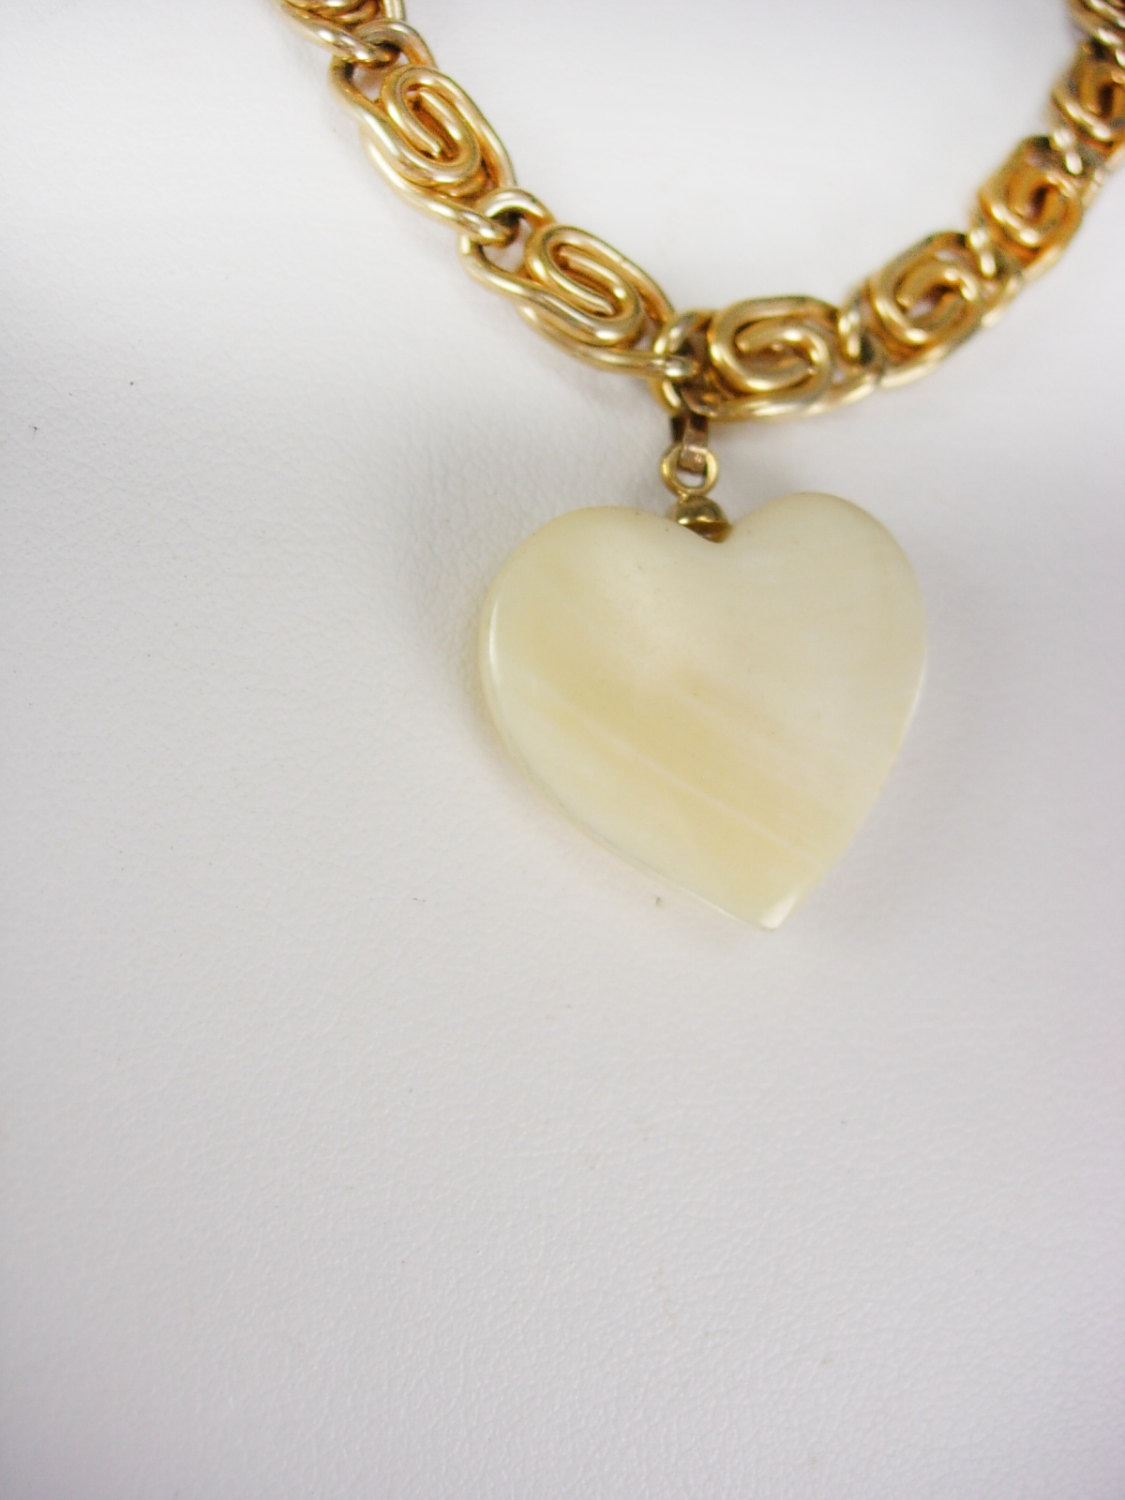 Coro Heart Charm Bracelet Vintage Mother Of Pearl Gold Filled Sweetheart designe